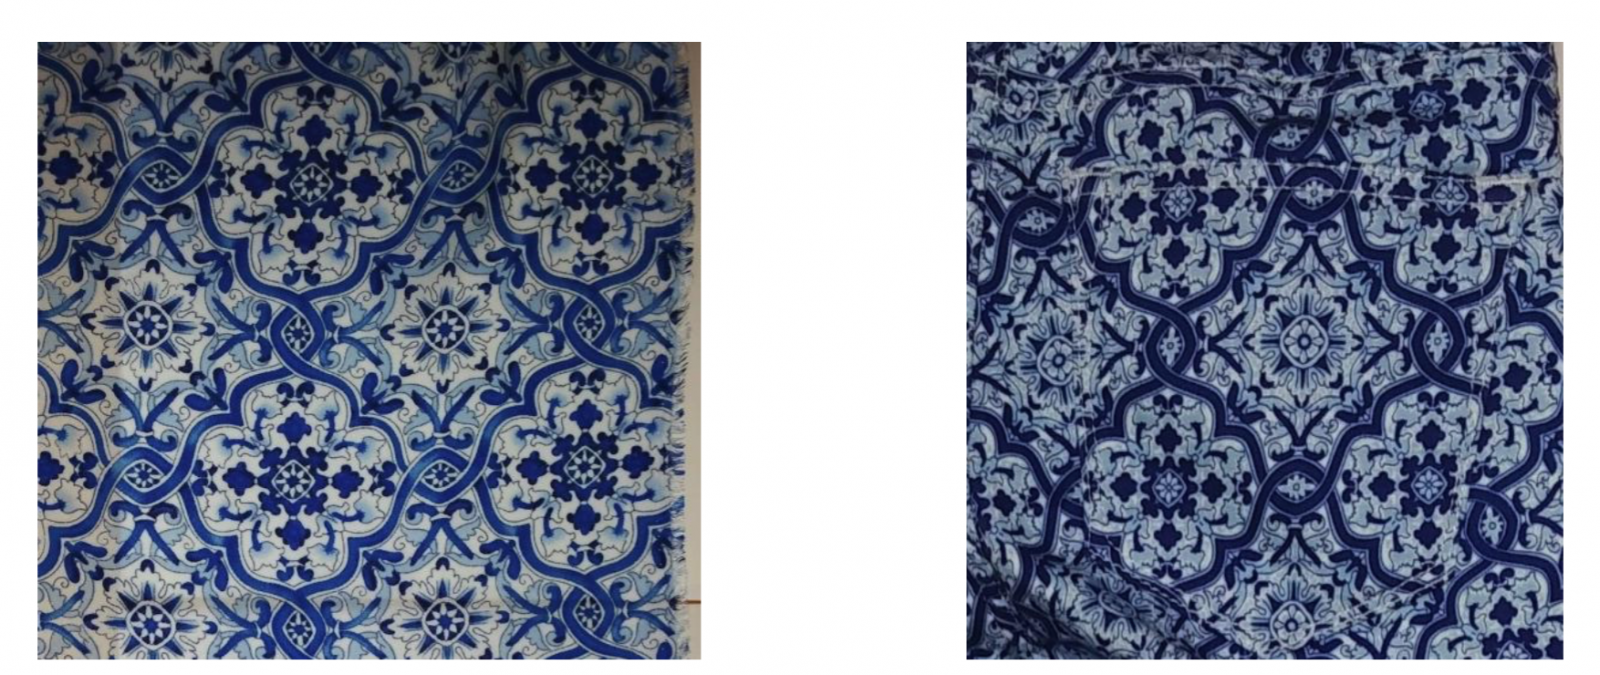 Nuance's print (left) and Zara pants (right)